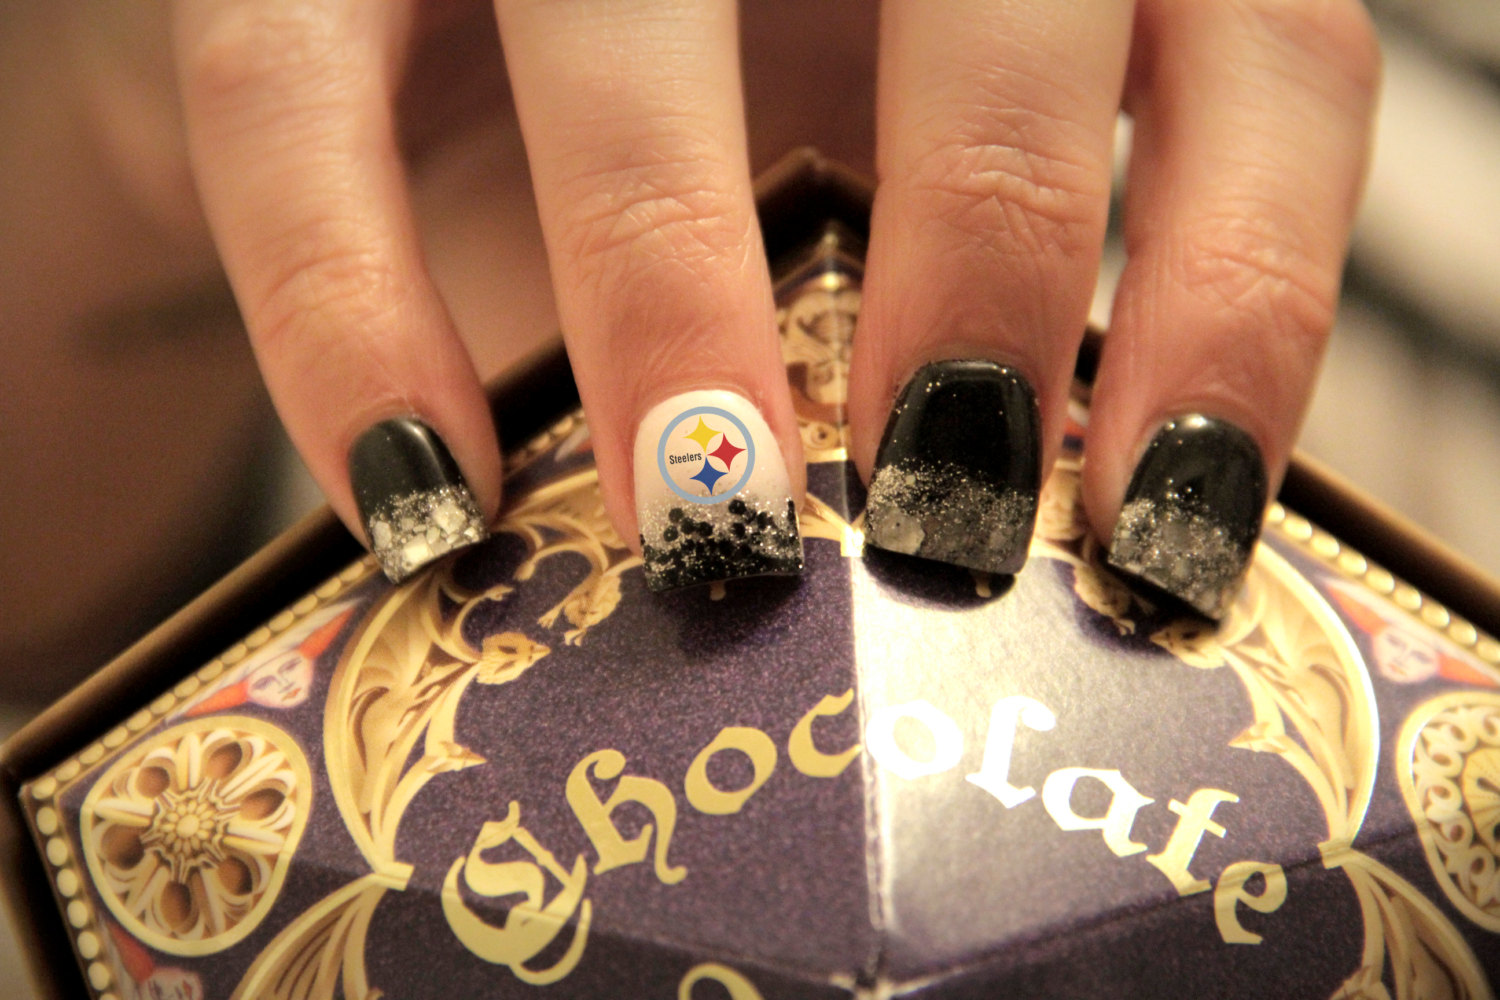 Steelers Nail Art Decals ~ Steelers nails party and gift ideas ...